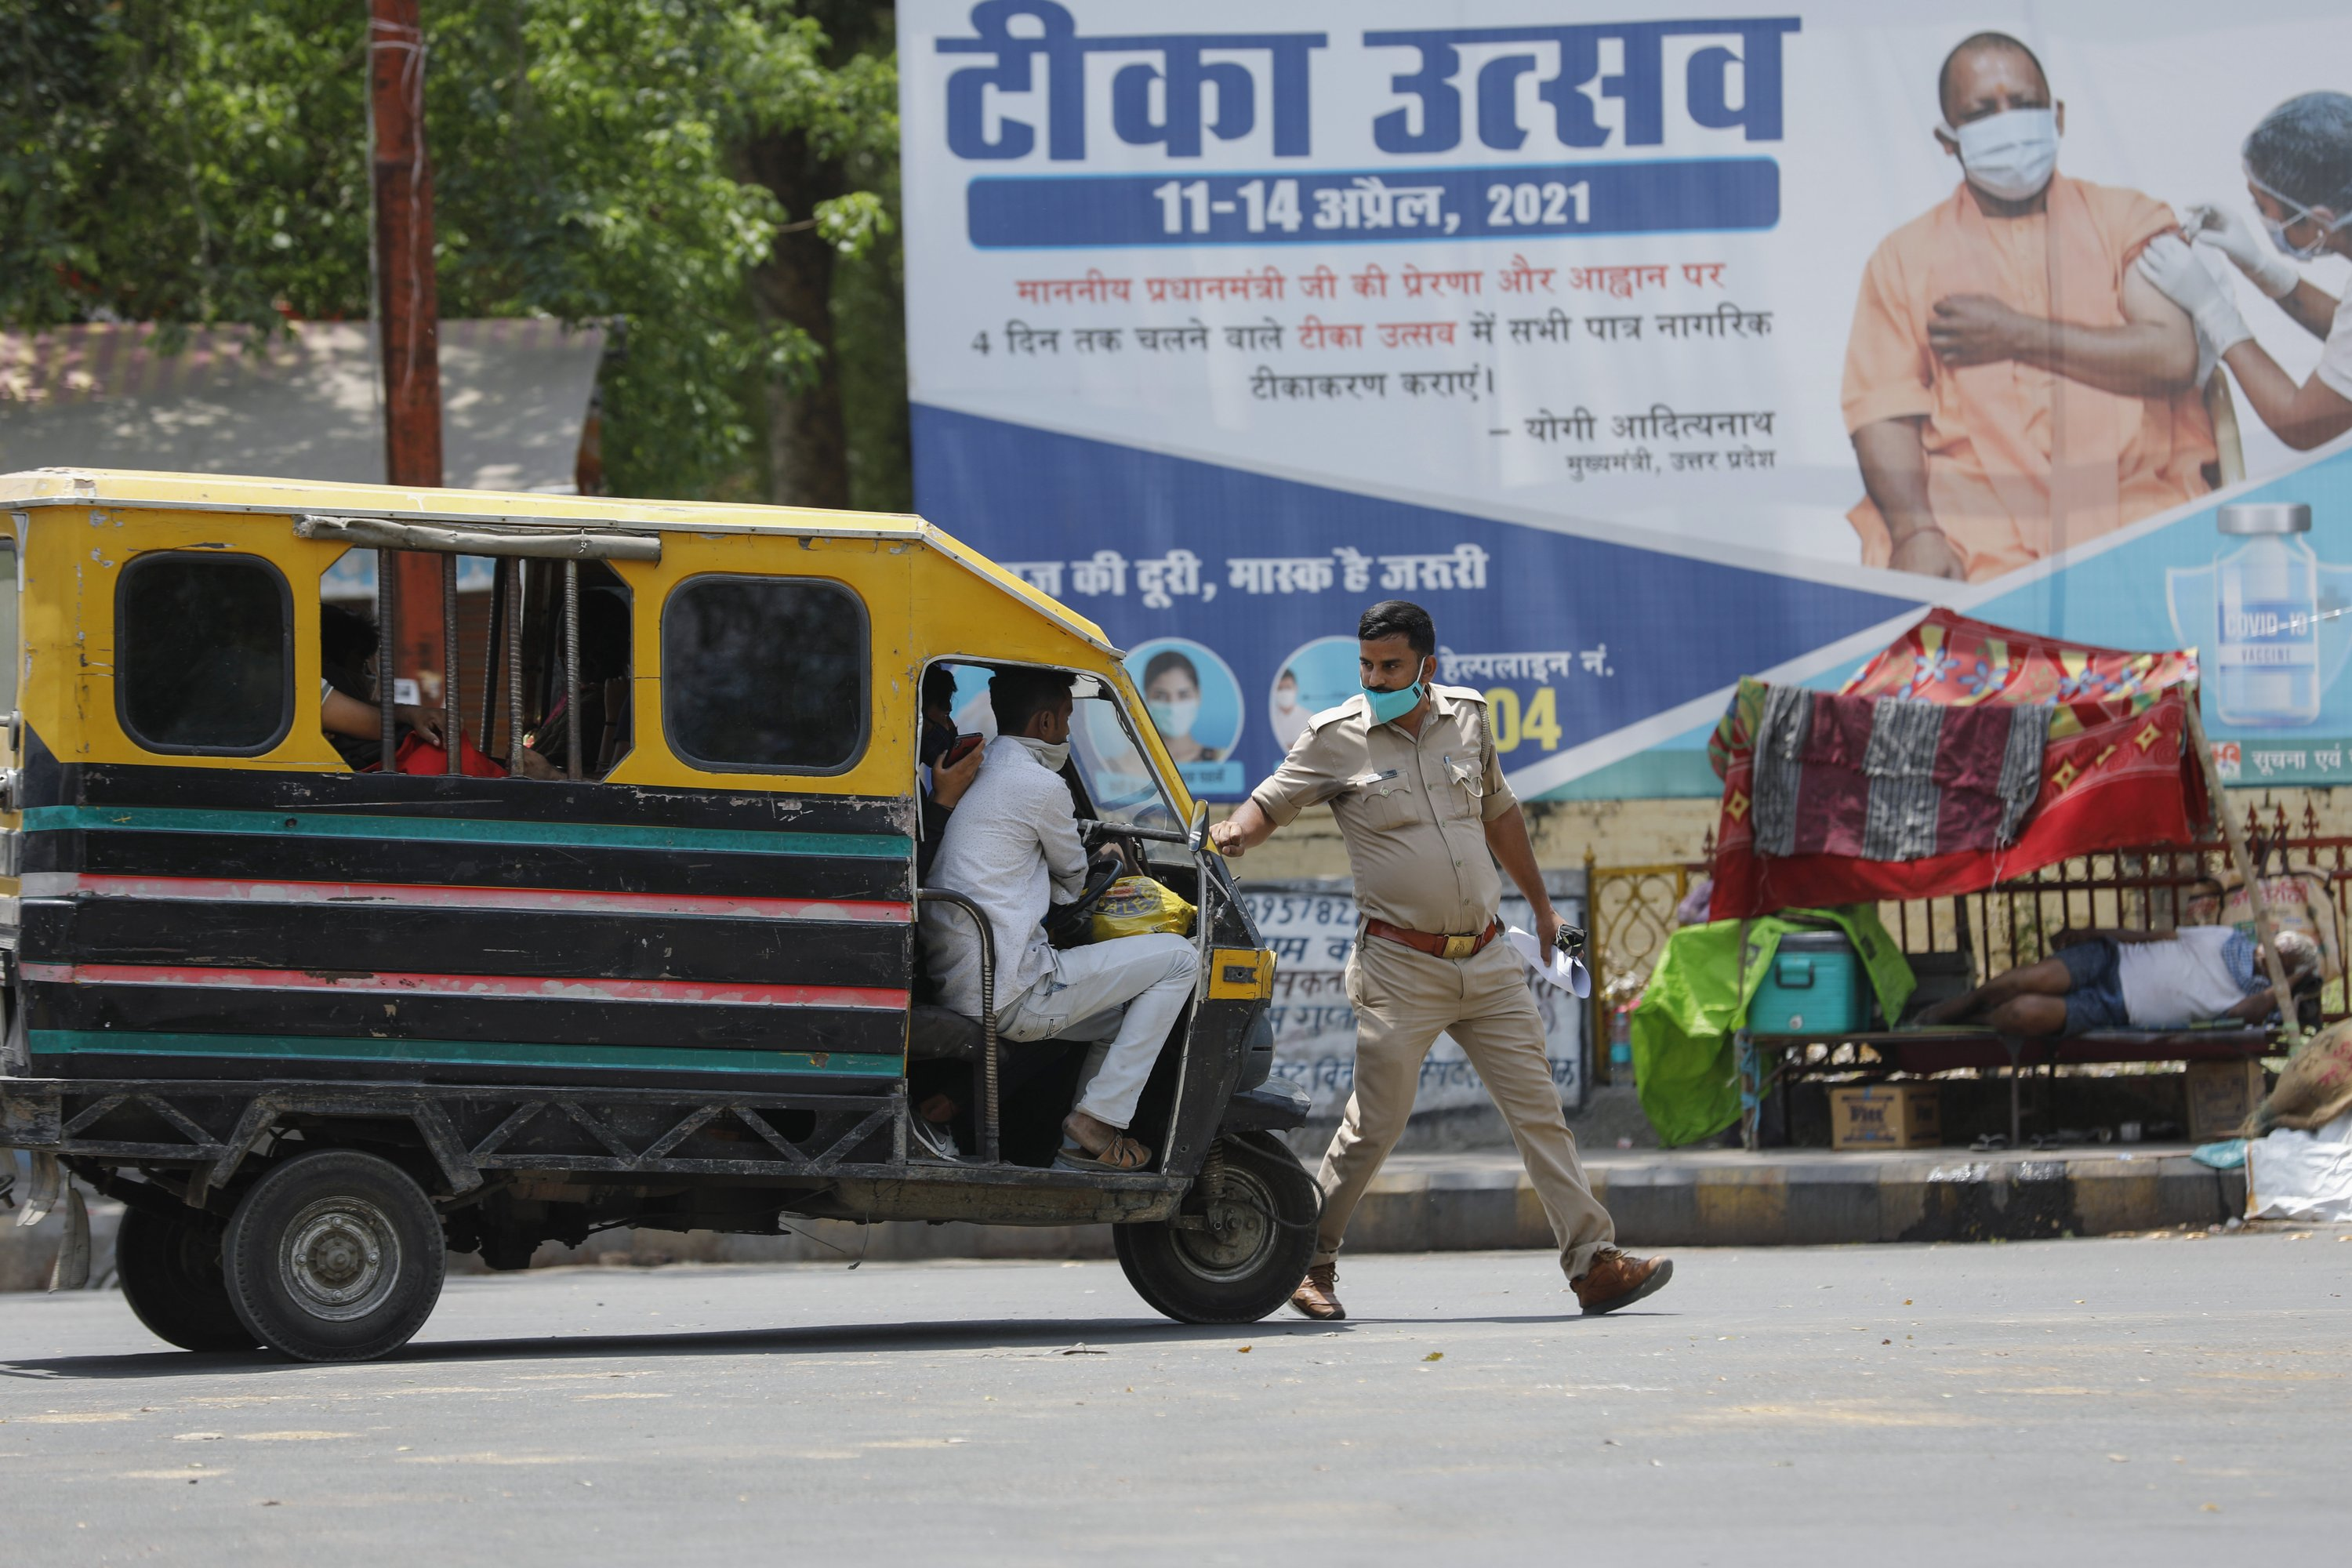 UK's Johnson cancels India trip as its virus cases surge